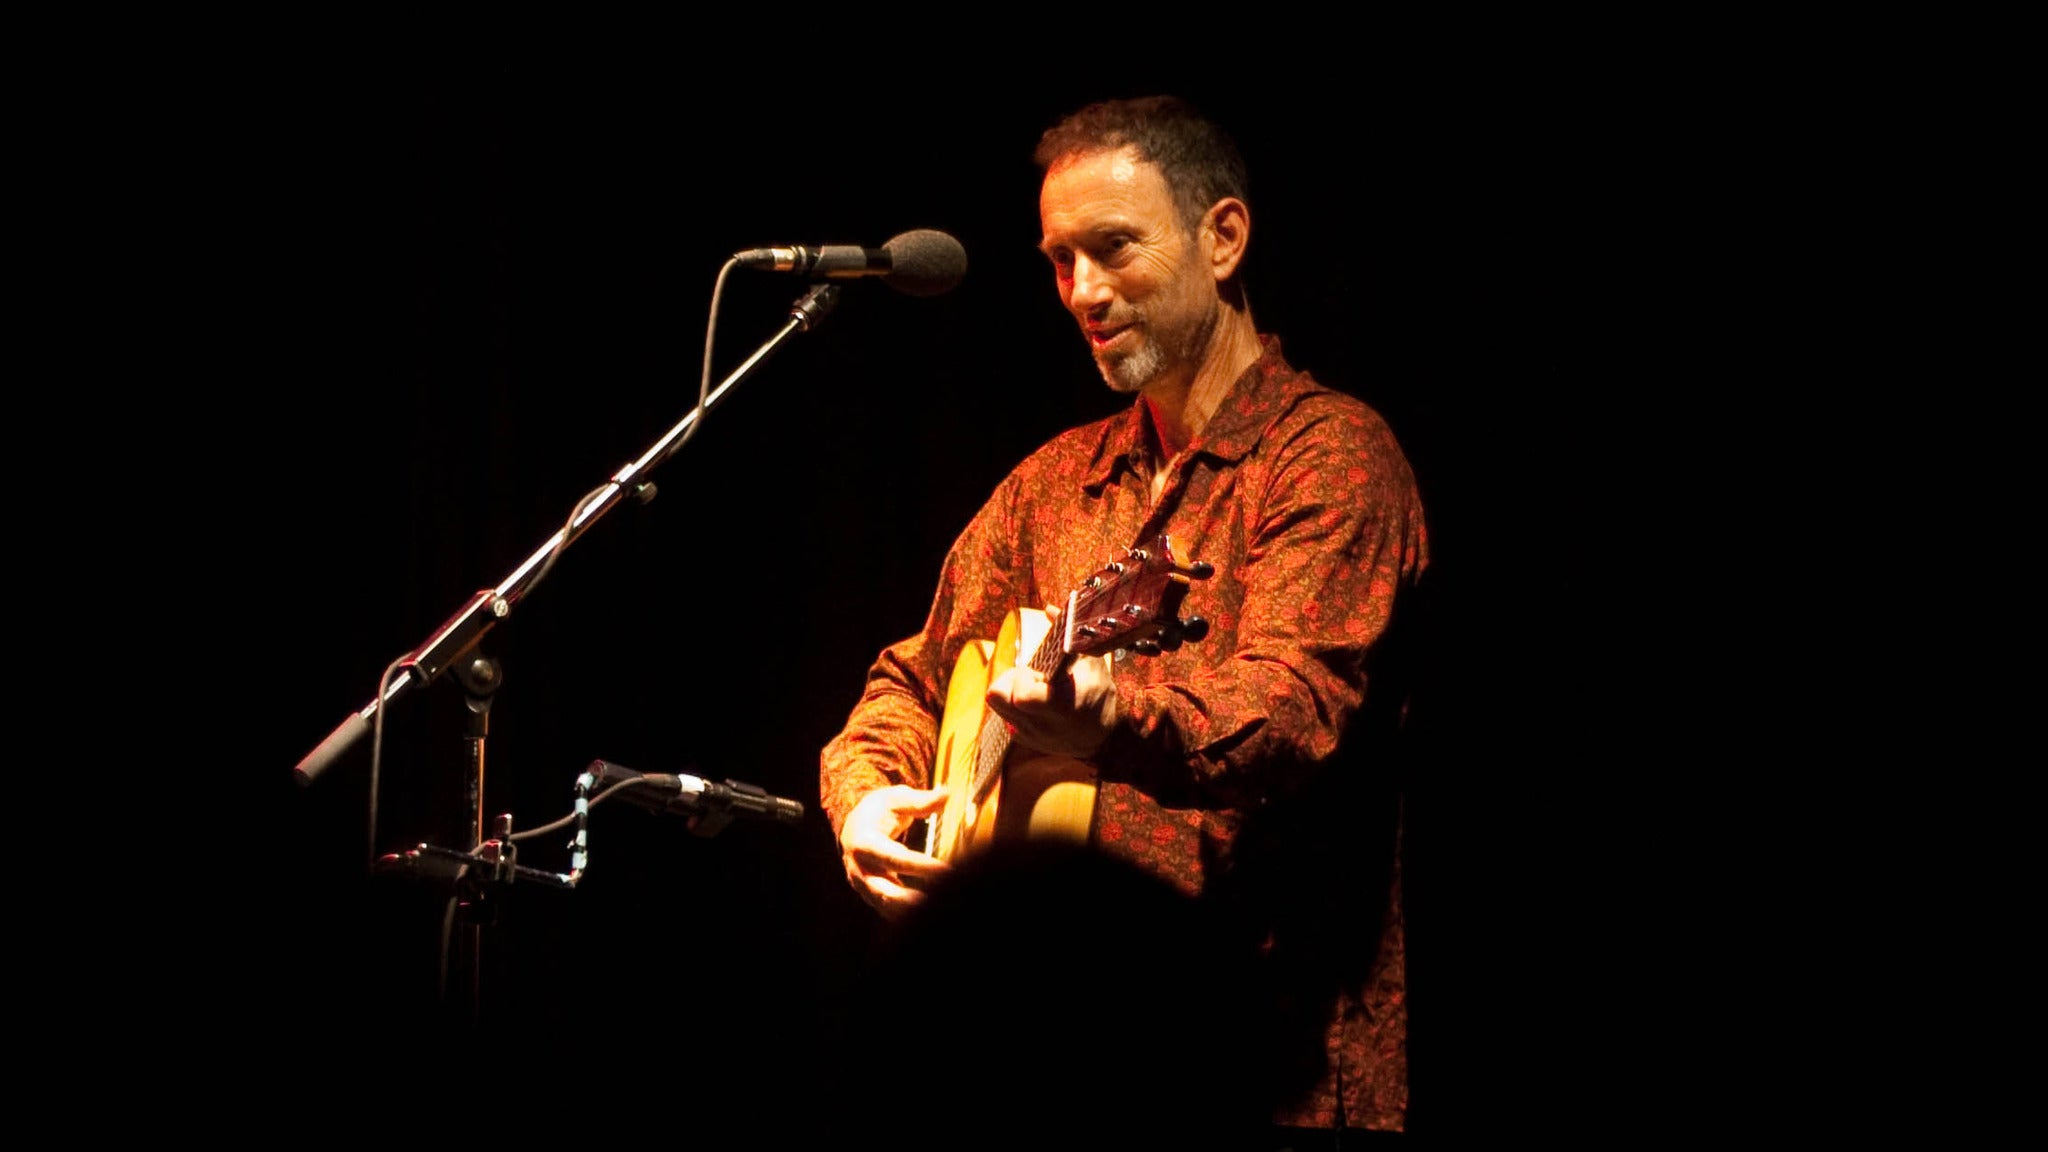 Jonathan Richman at Greenwich Odeum